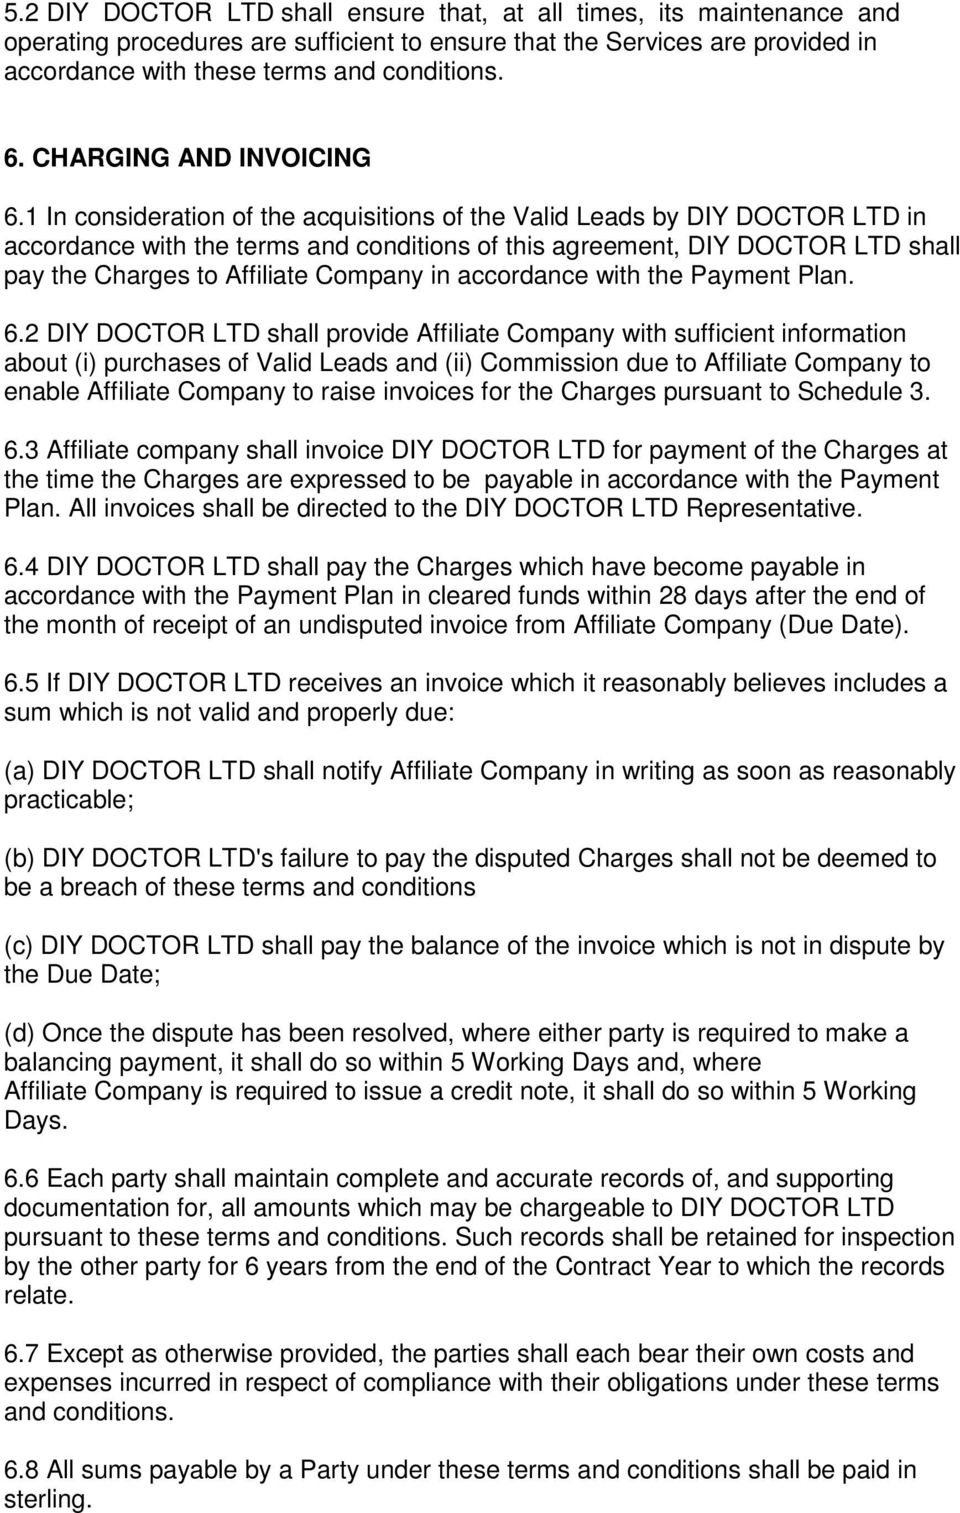 1 In consideration of the acquisitions of the Valid Leads by DIY DOCTOR LTD in accordance with the terms and conditions of this agreement, DIY DOCTOR LTD shall pay the Charges to Affiliate Company in